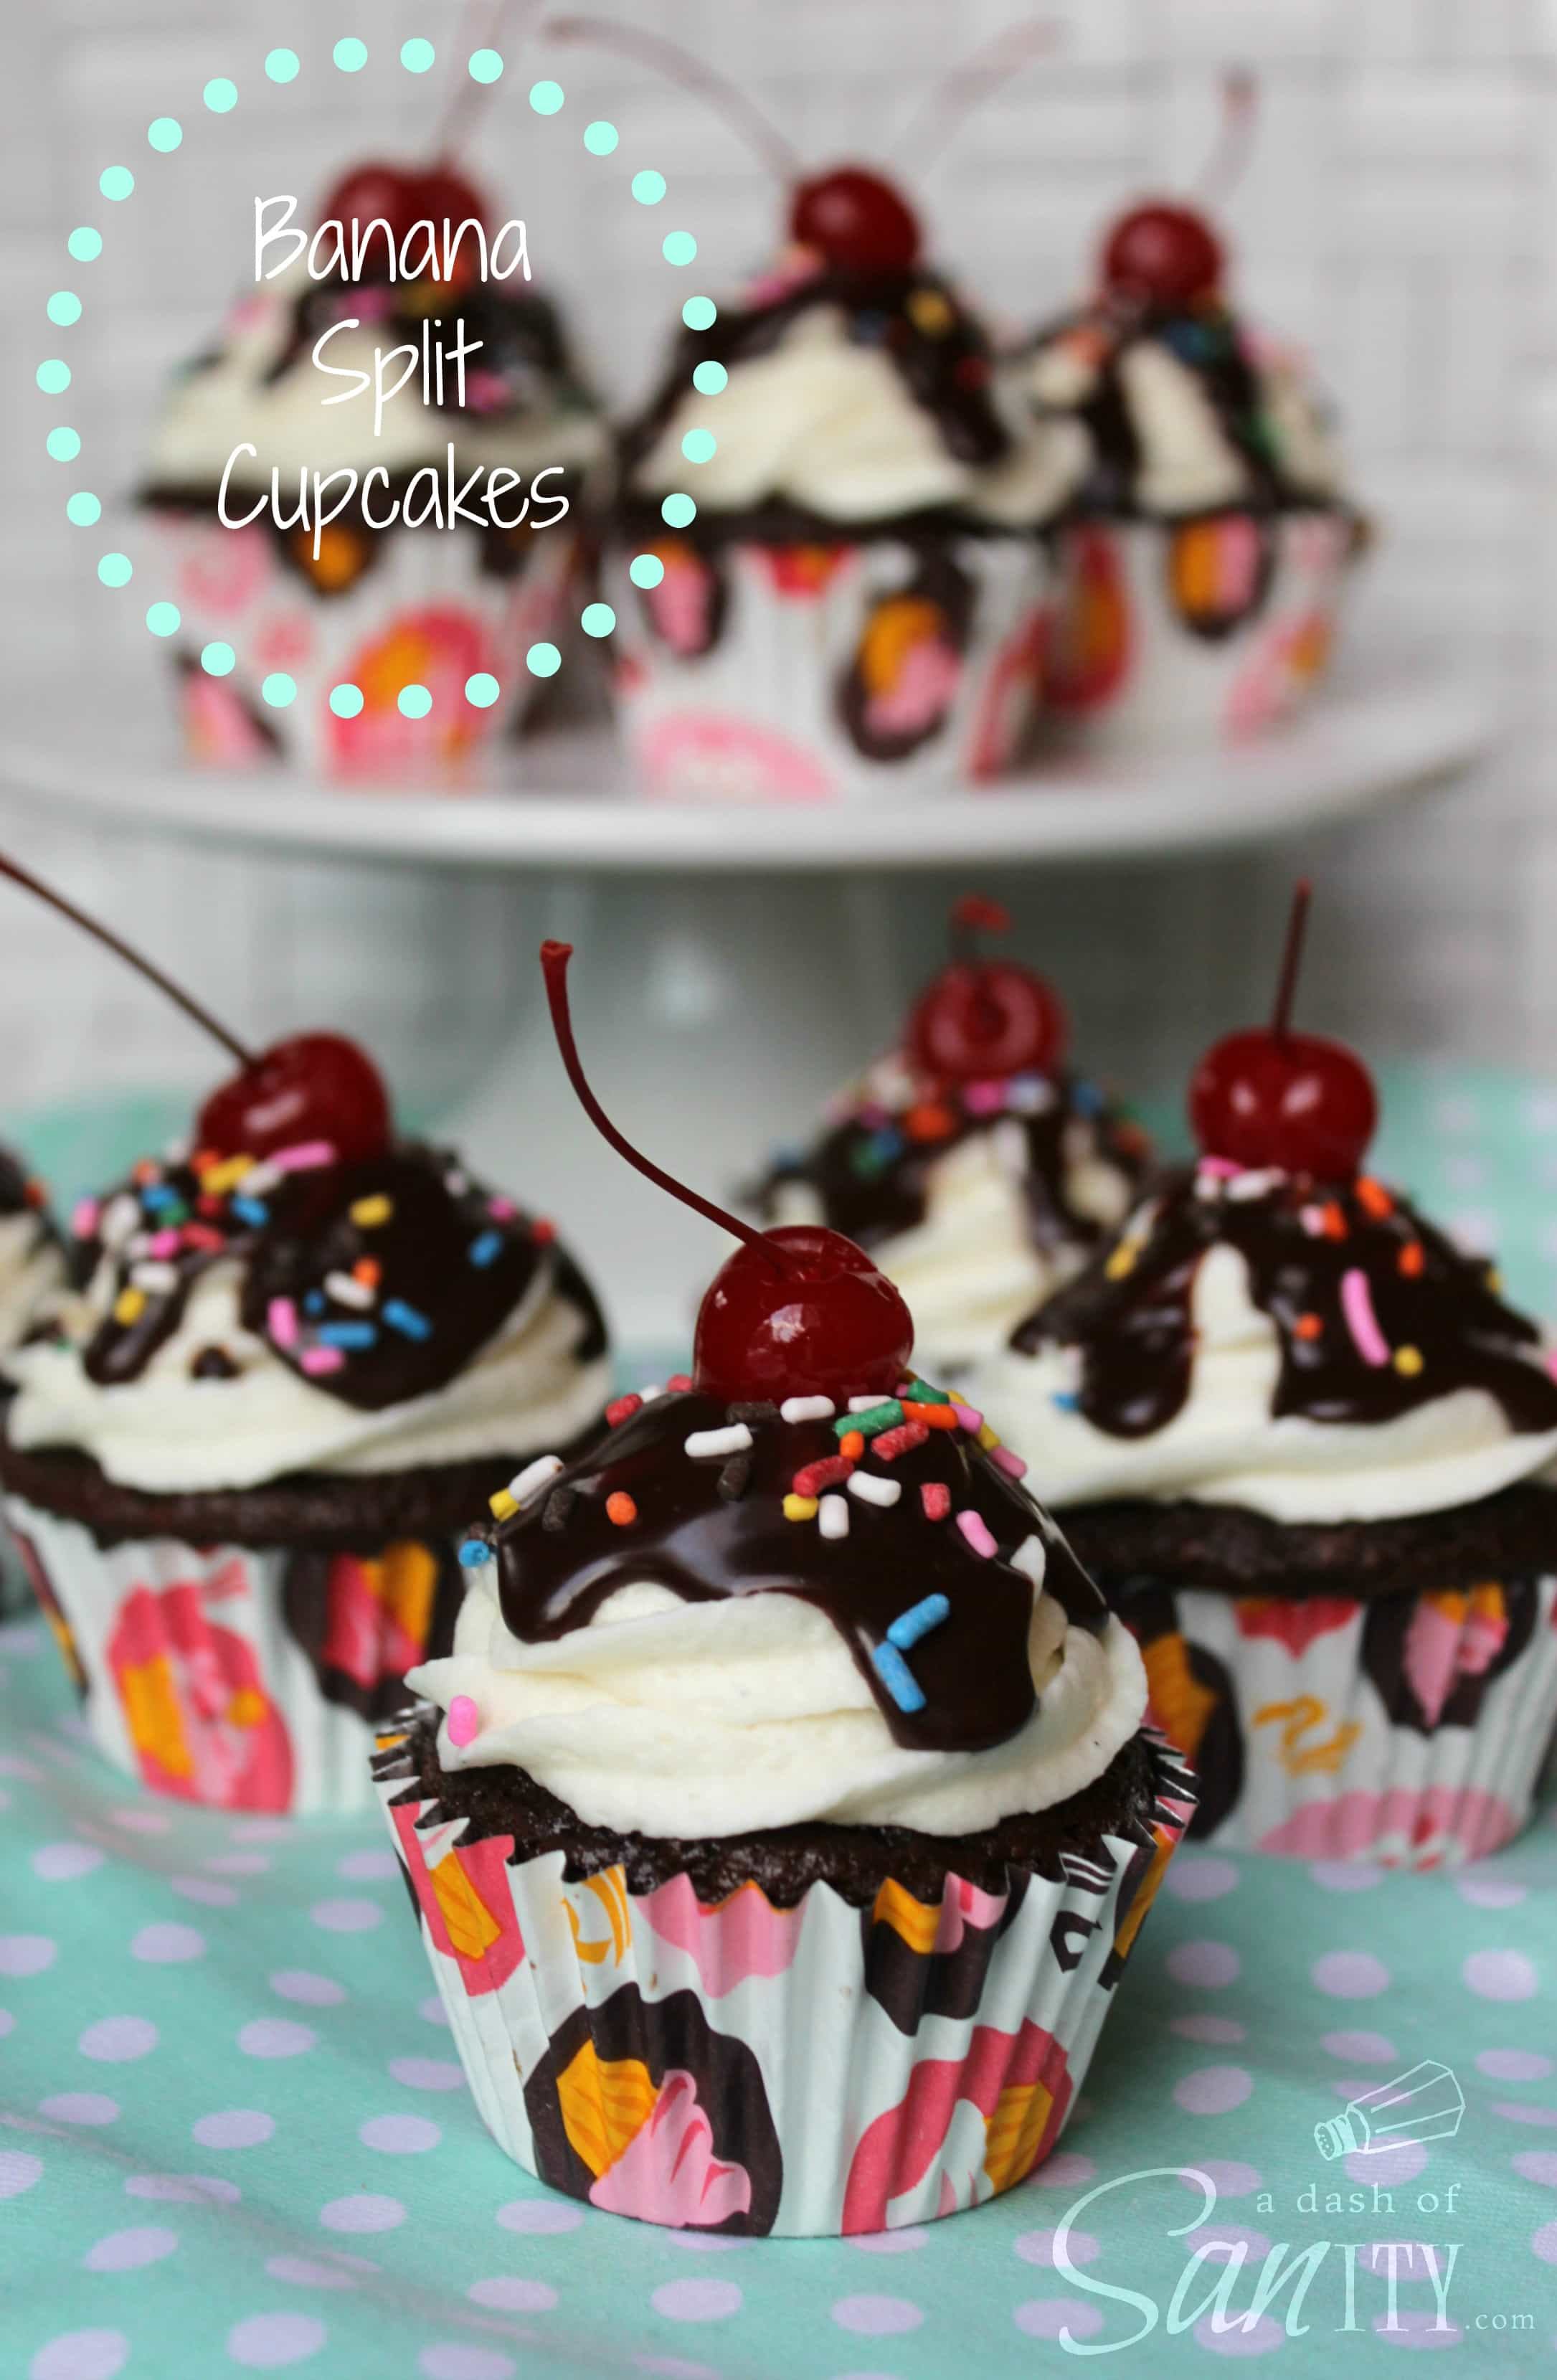 Banana Split Cupcakes on a cake stand and up close, cupcakes topped with hot fudge, sprinkles, and a cherry